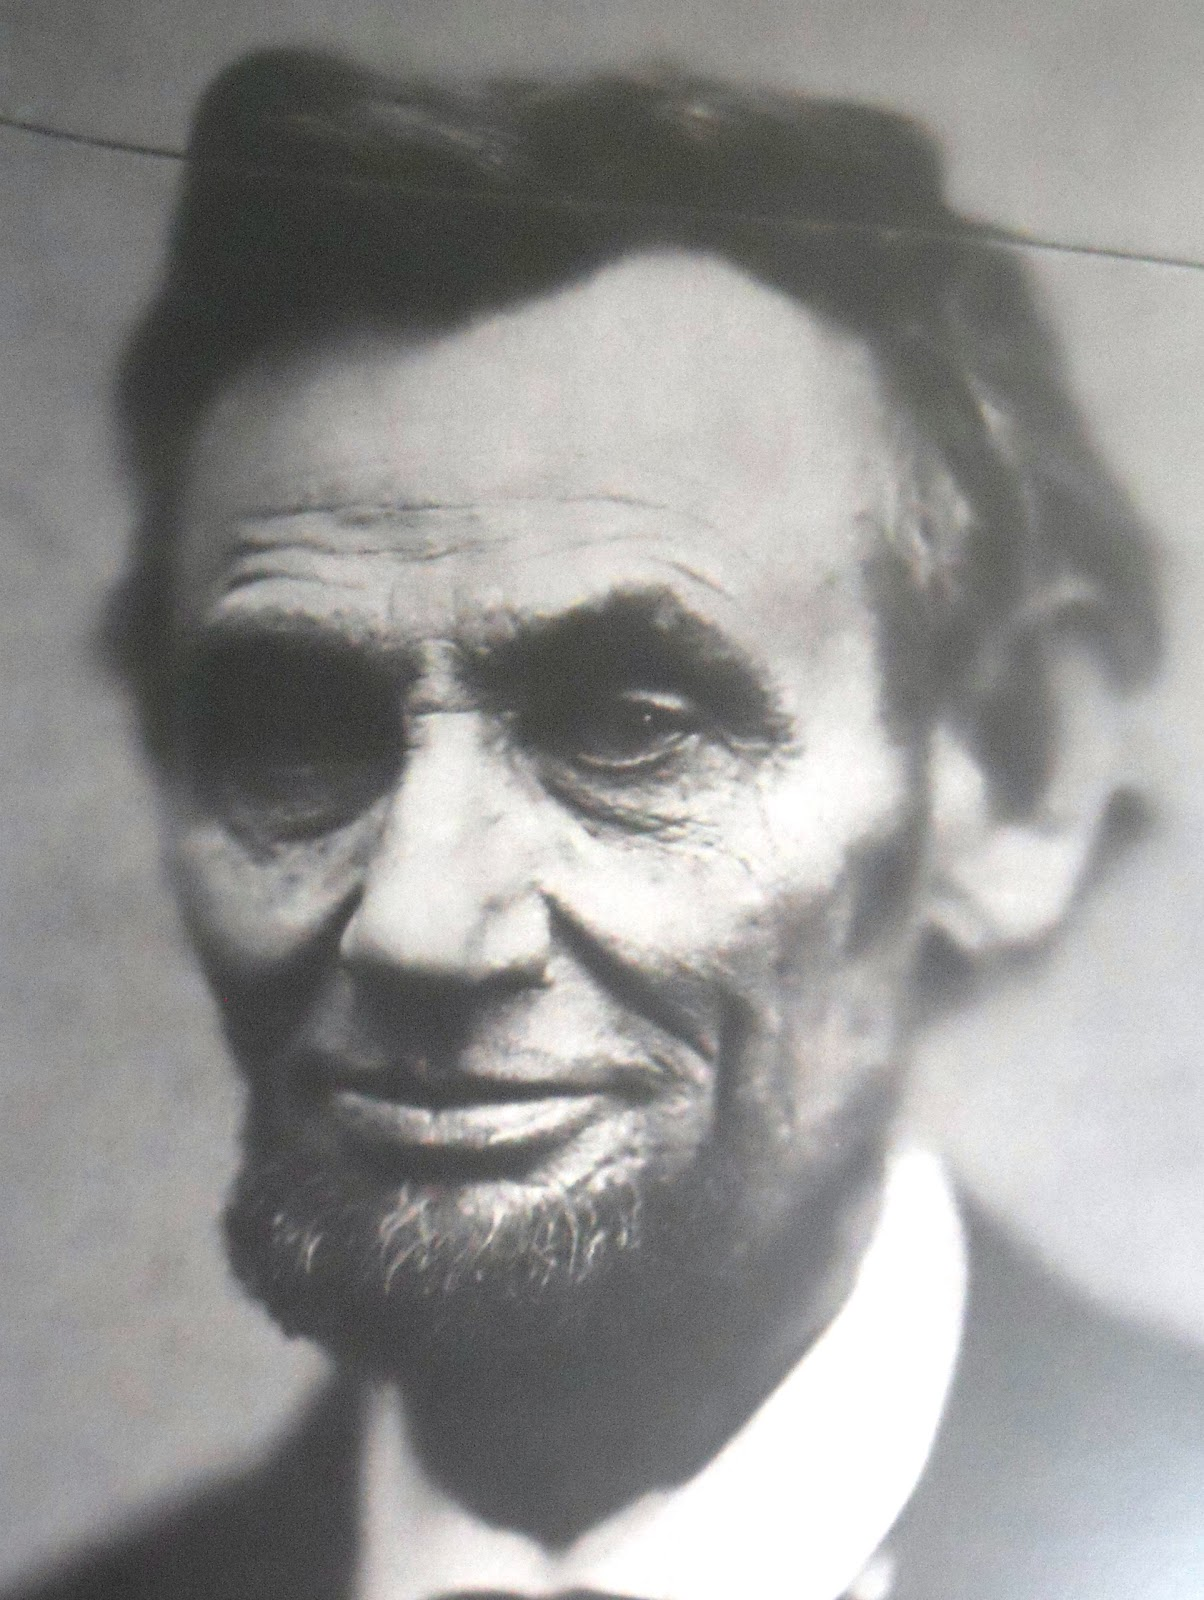 abraham lincoln moral just and practical and his views on slavery On the 203rd anniversary of abraham lincoln's birth (he was born  douglass  believed that lincoln would move toward his view that slavery had to end in order  to  practical means of weakening the confederate cause, but douglass  help  bend the arch of the moral universe toward justice and freedom.